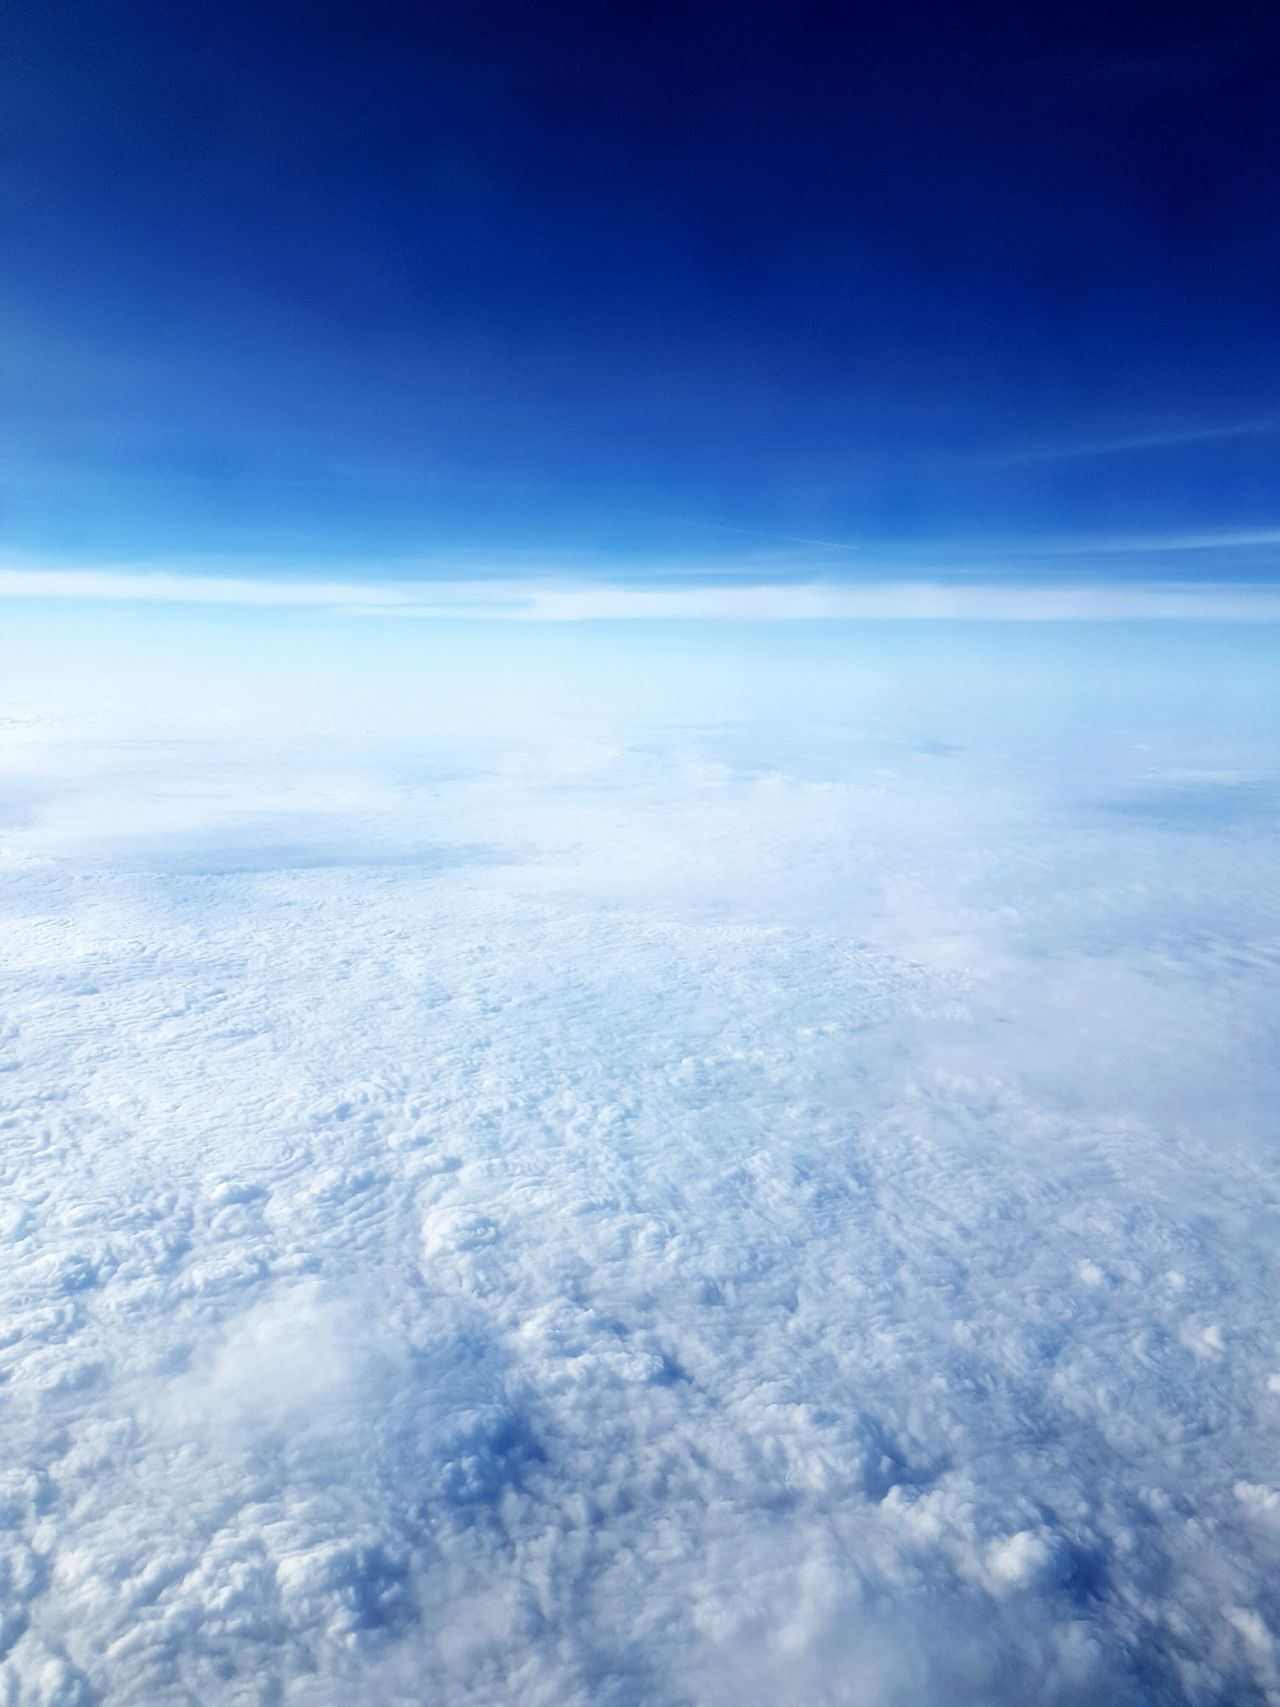 Flying High Blue Landscape Sky Cloud - Sky Aerial View Non-urban Scene Outdoors Dramatic Sky Tranquil Scene Scenics Nature Himmel Himmel Und Wolken Himmelblau Sky And Clouds Skyblue Plane View